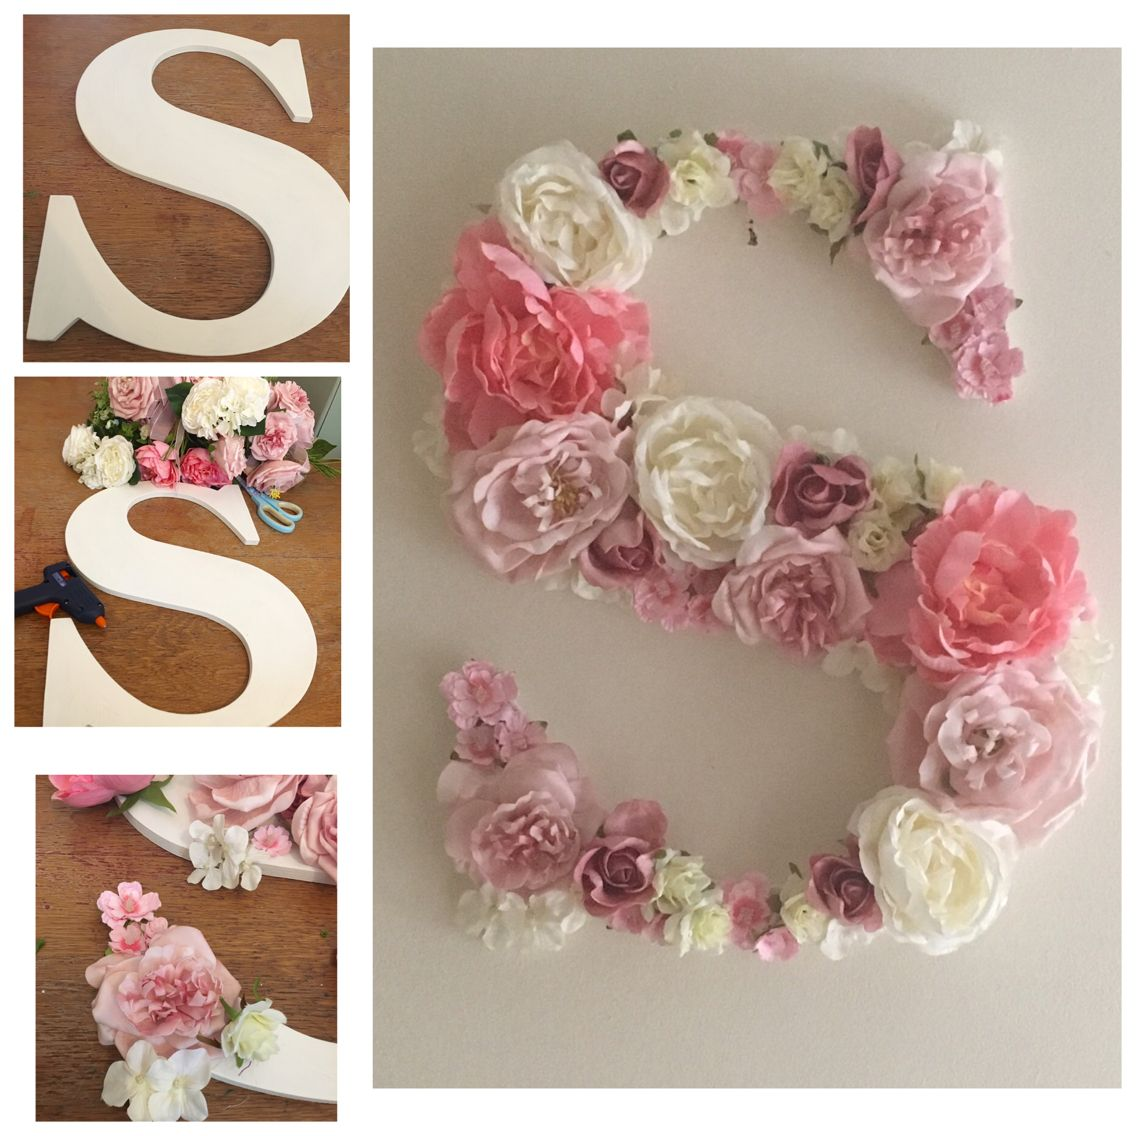 Wooden S Letter Decorated With Silk Flowers Wooden Letters Decorated Letter A Crafts Flower Letters